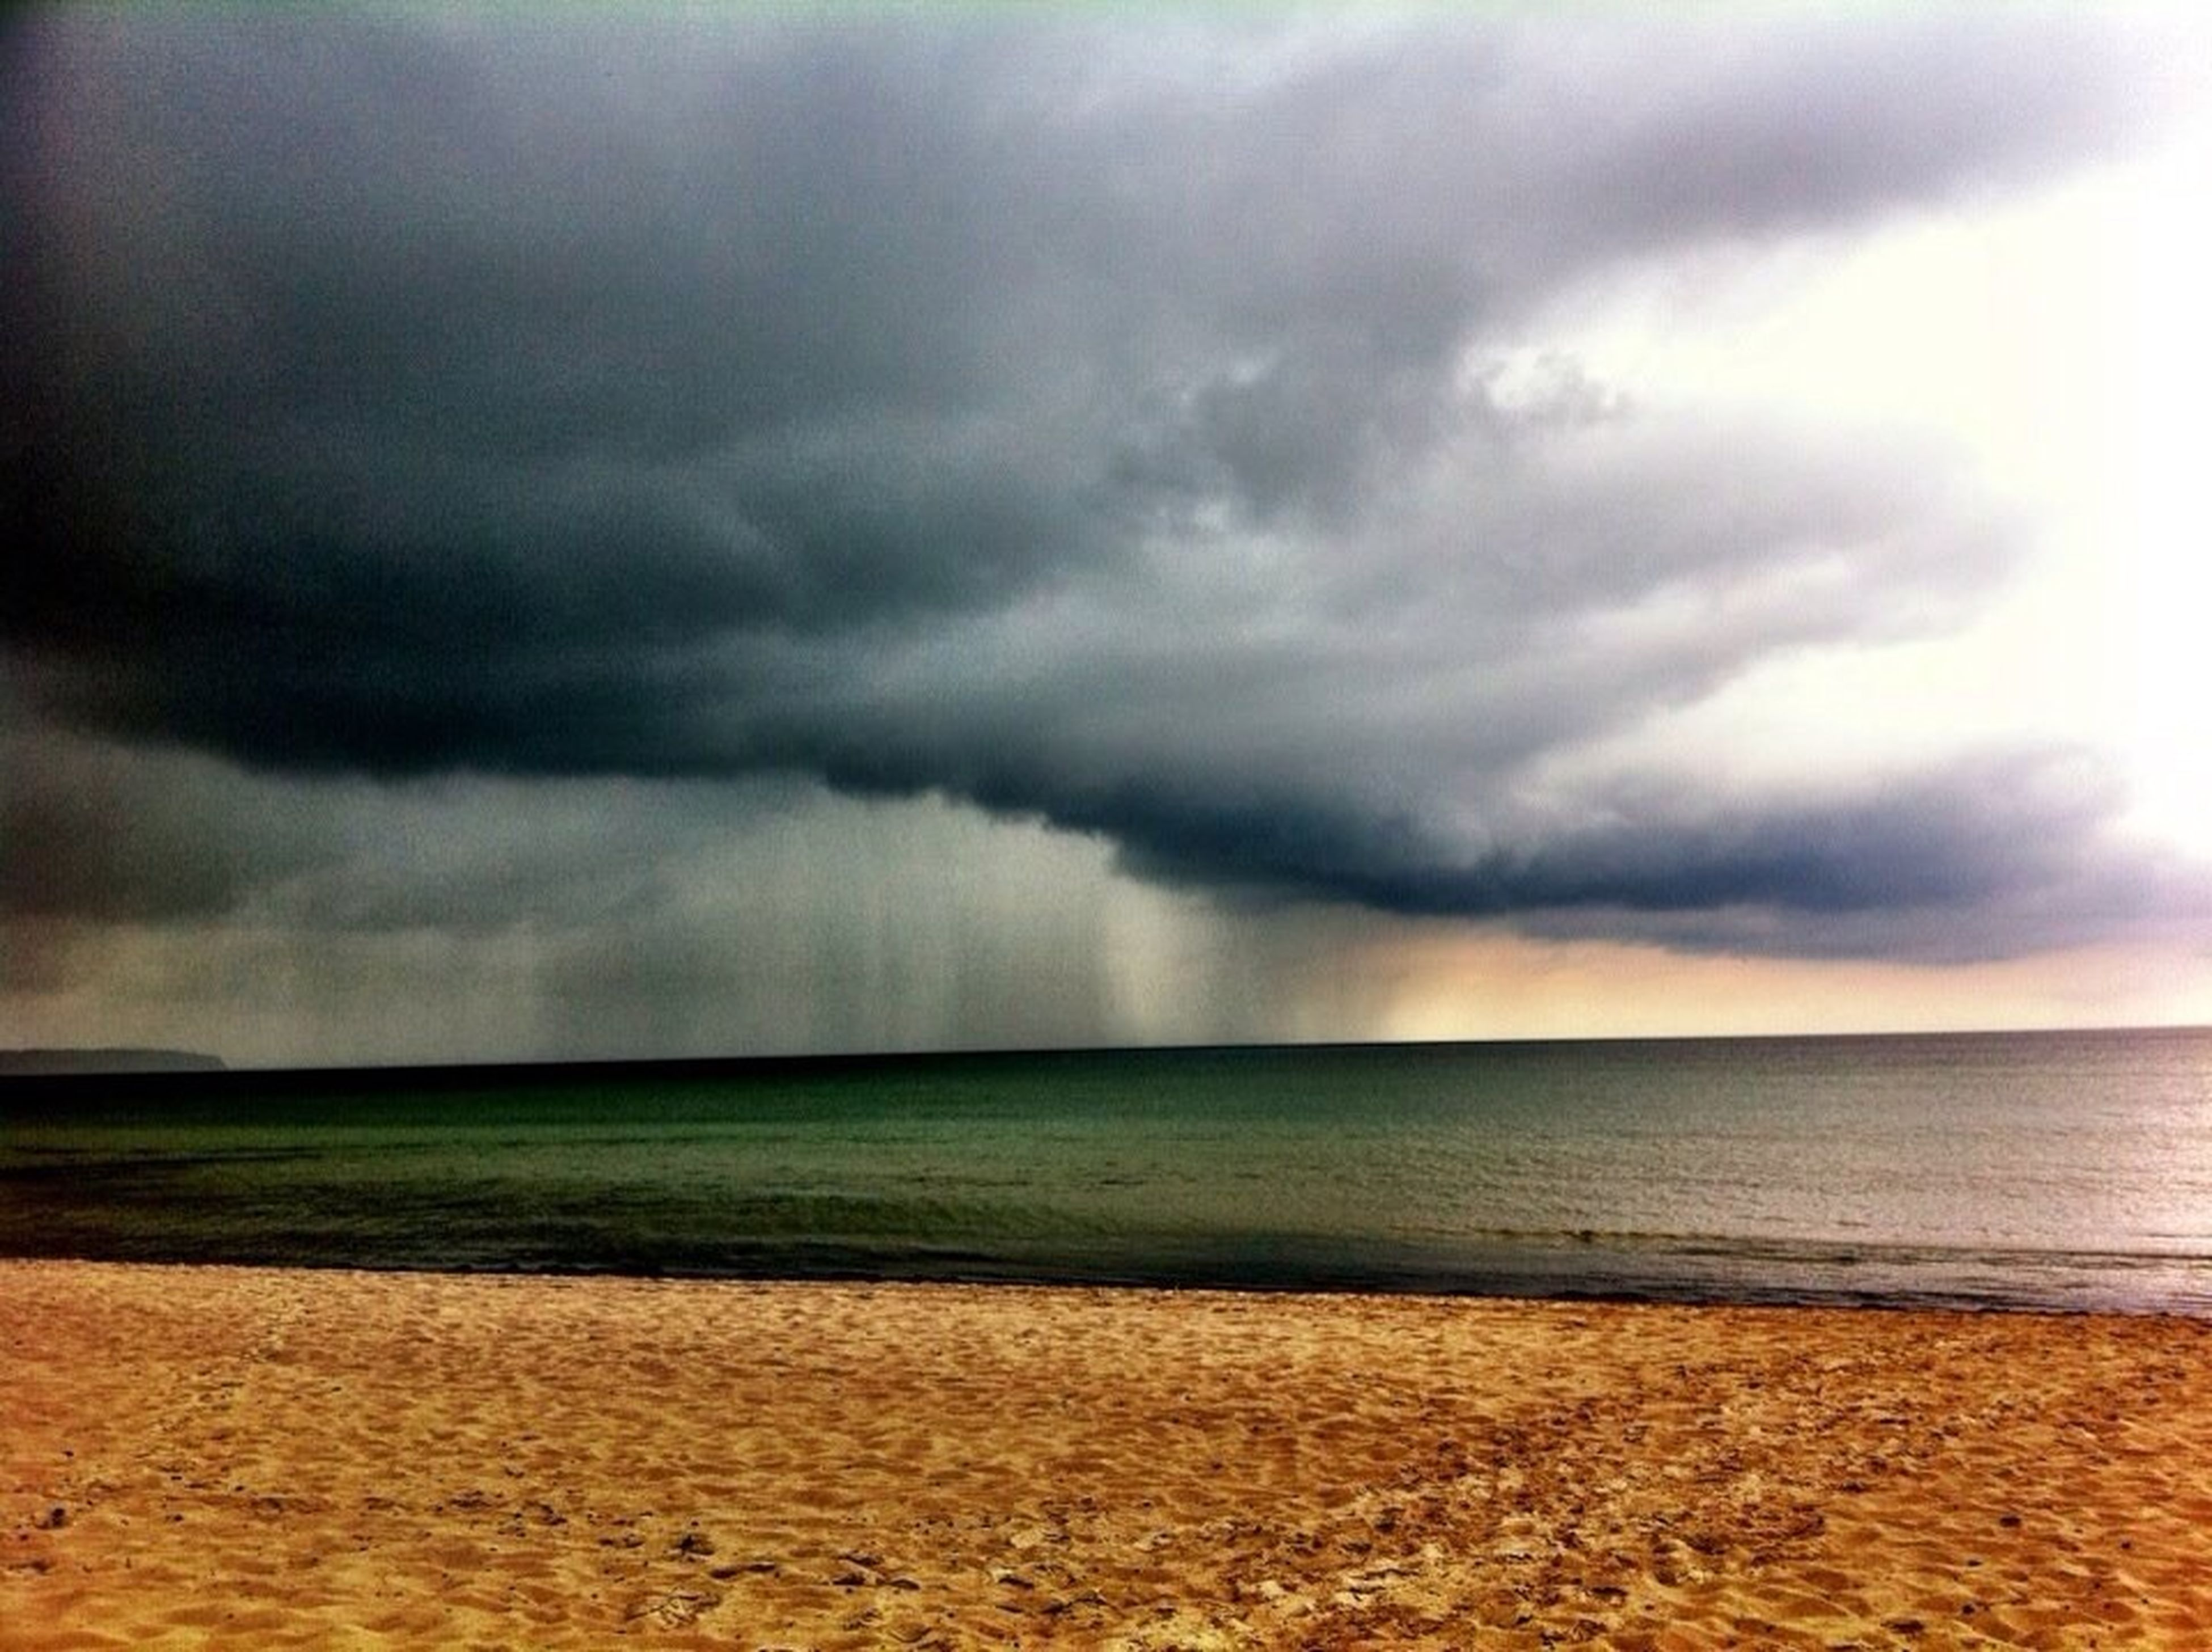 sea, horizon over water, sky, beach, cloud - sky, cloudy, tranquil scene, scenics, water, tranquility, shore, beauty in nature, overcast, sand, weather, nature, cloud, storm cloud, idyllic, remote